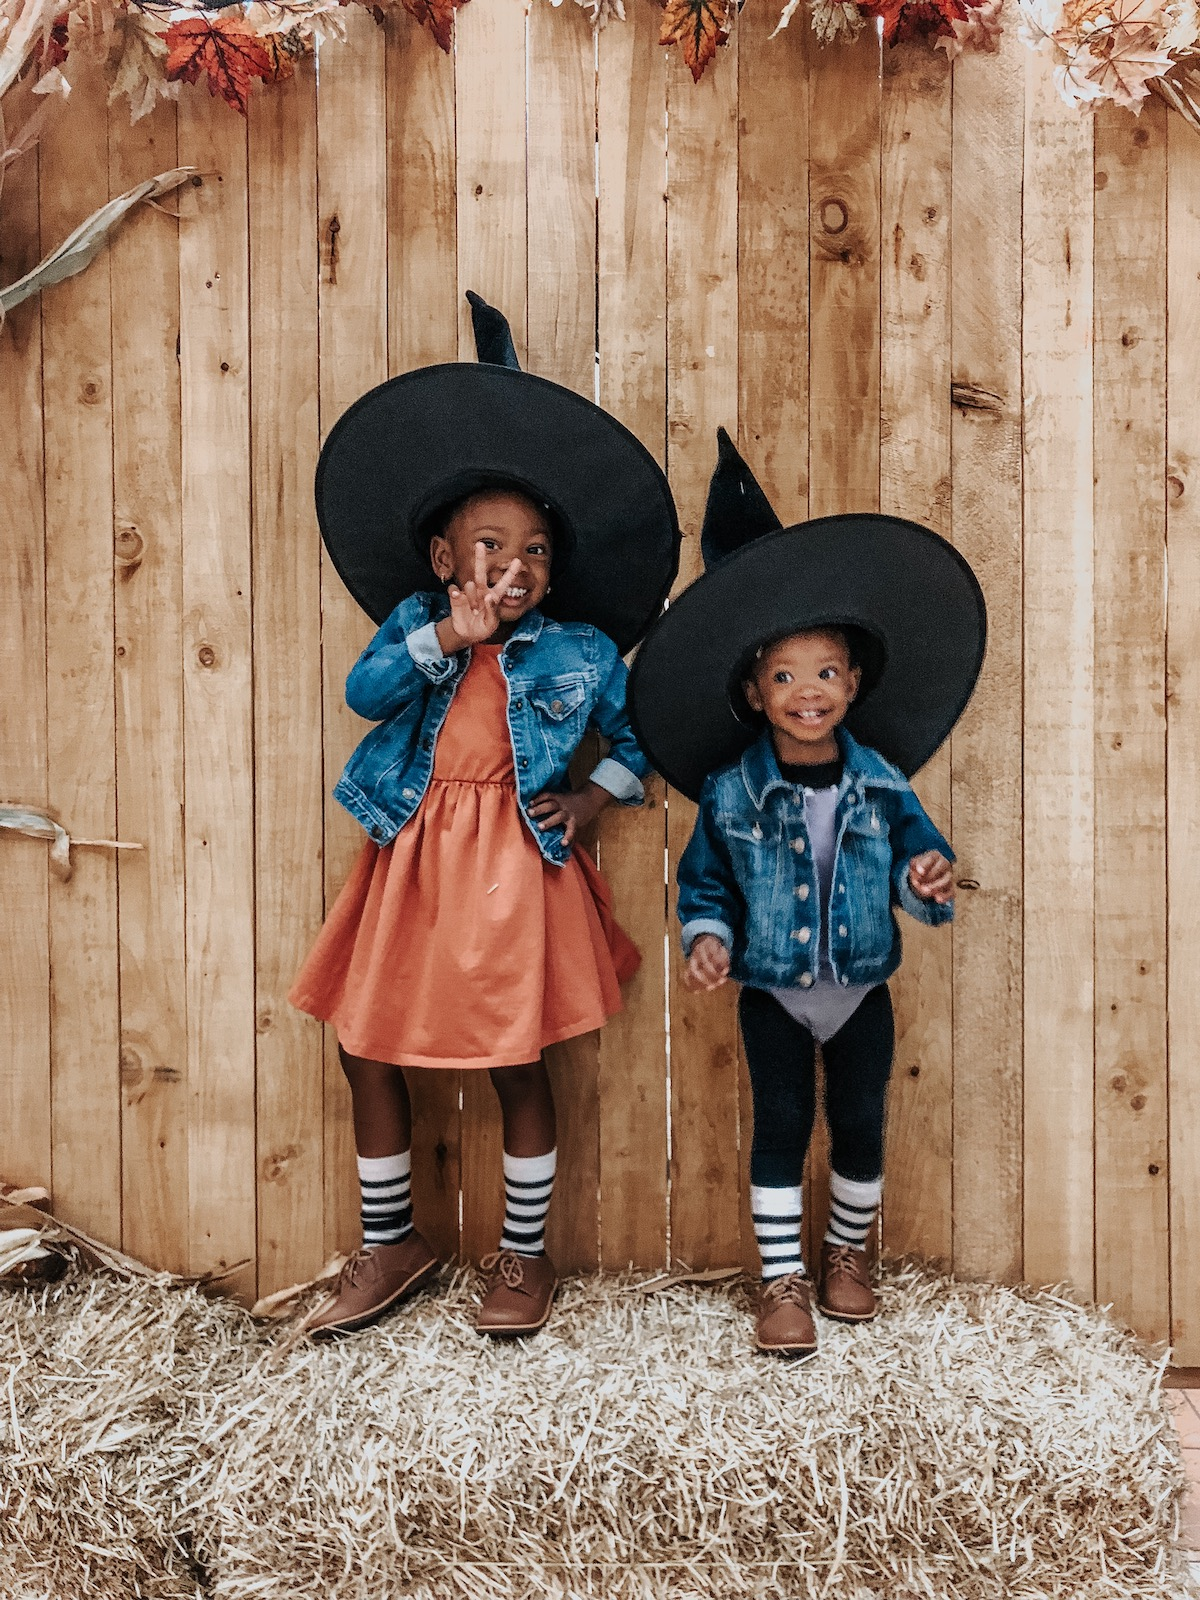 Photo of little girls in Halloween costumes posing for a photo in front of wooden fence